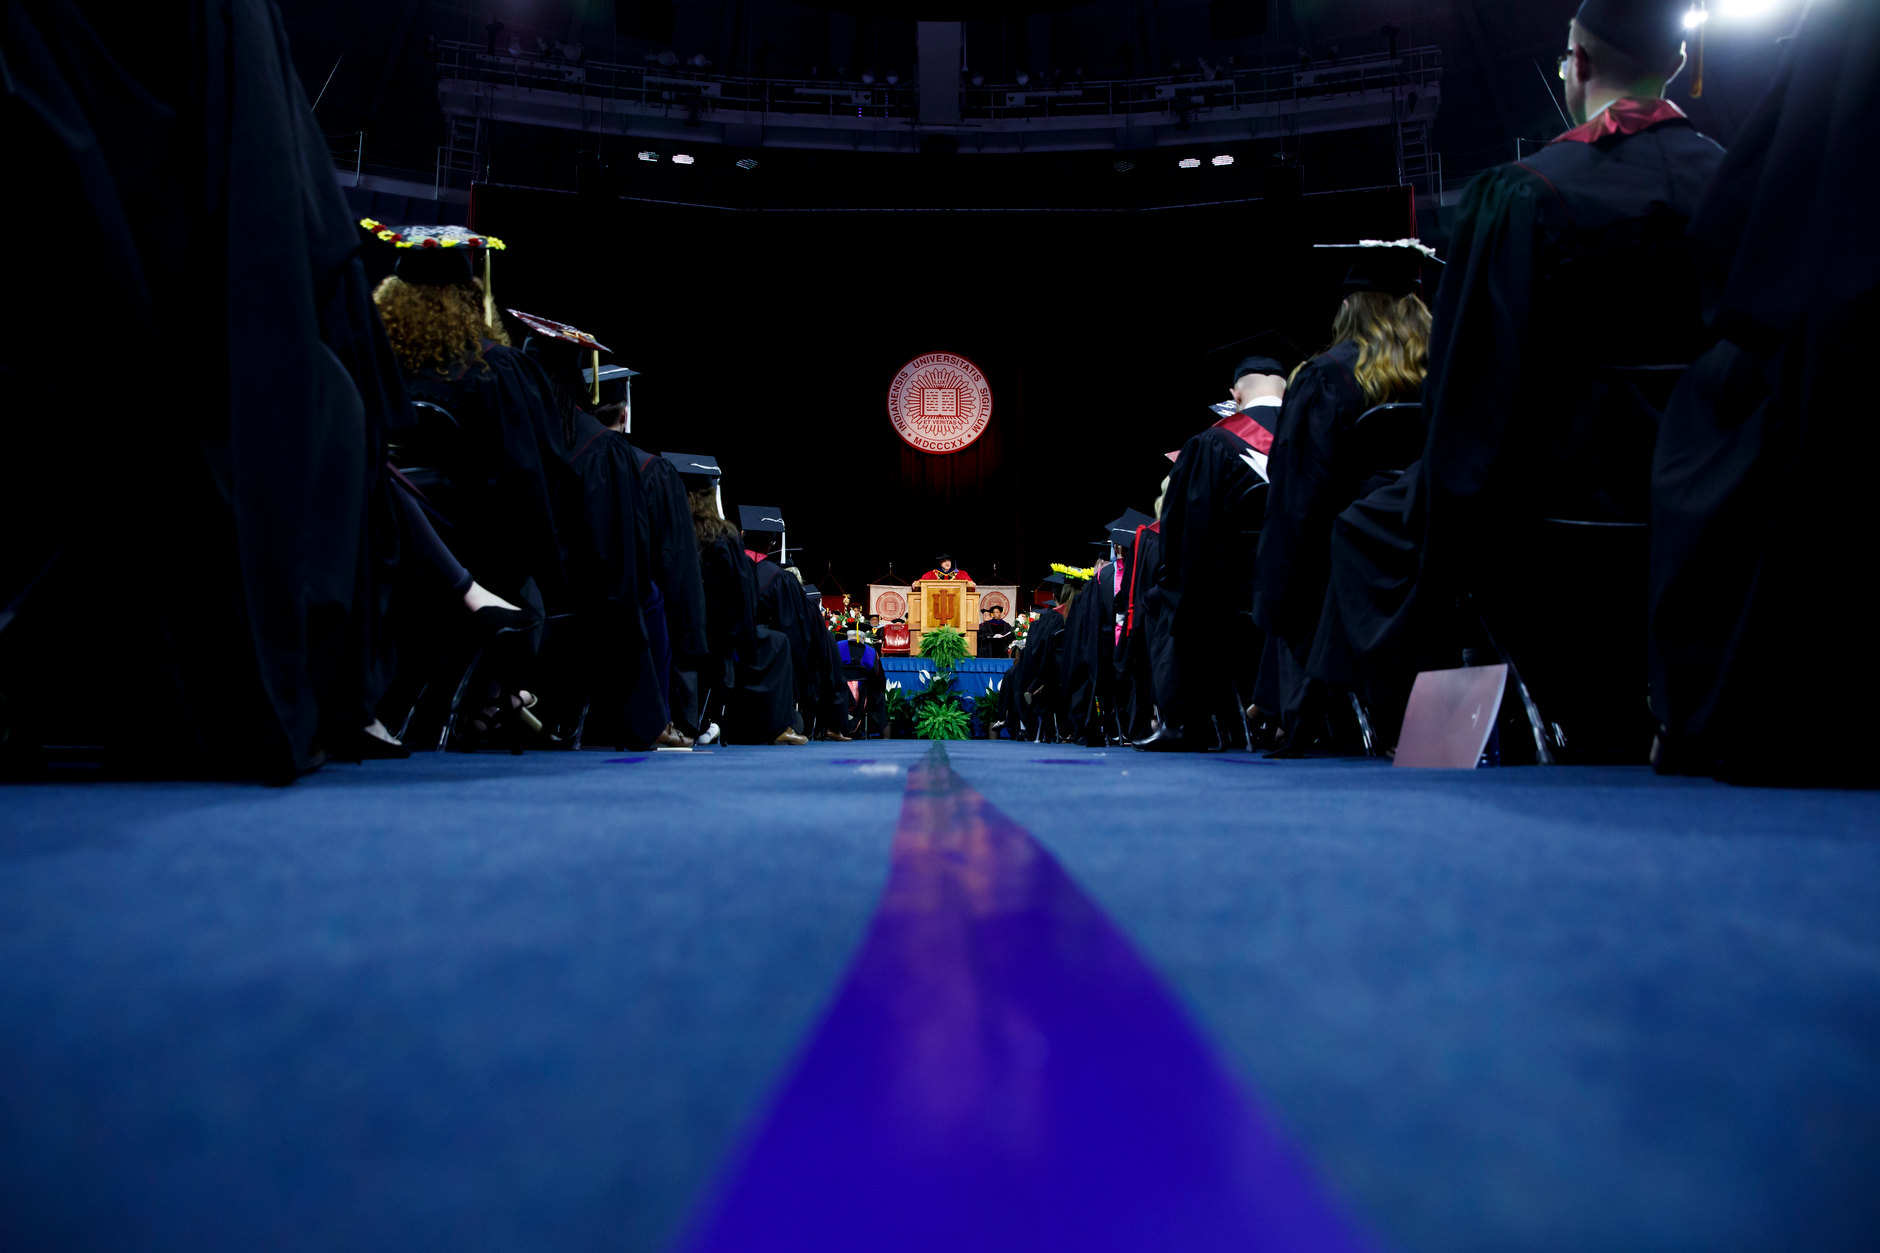 Indiana University President Michael A. McRobbie speaks during the IU South Bend Commencement at the University of Notre Dame on Tuesday, May 7, 2019. (James Brosher/Indiana University)